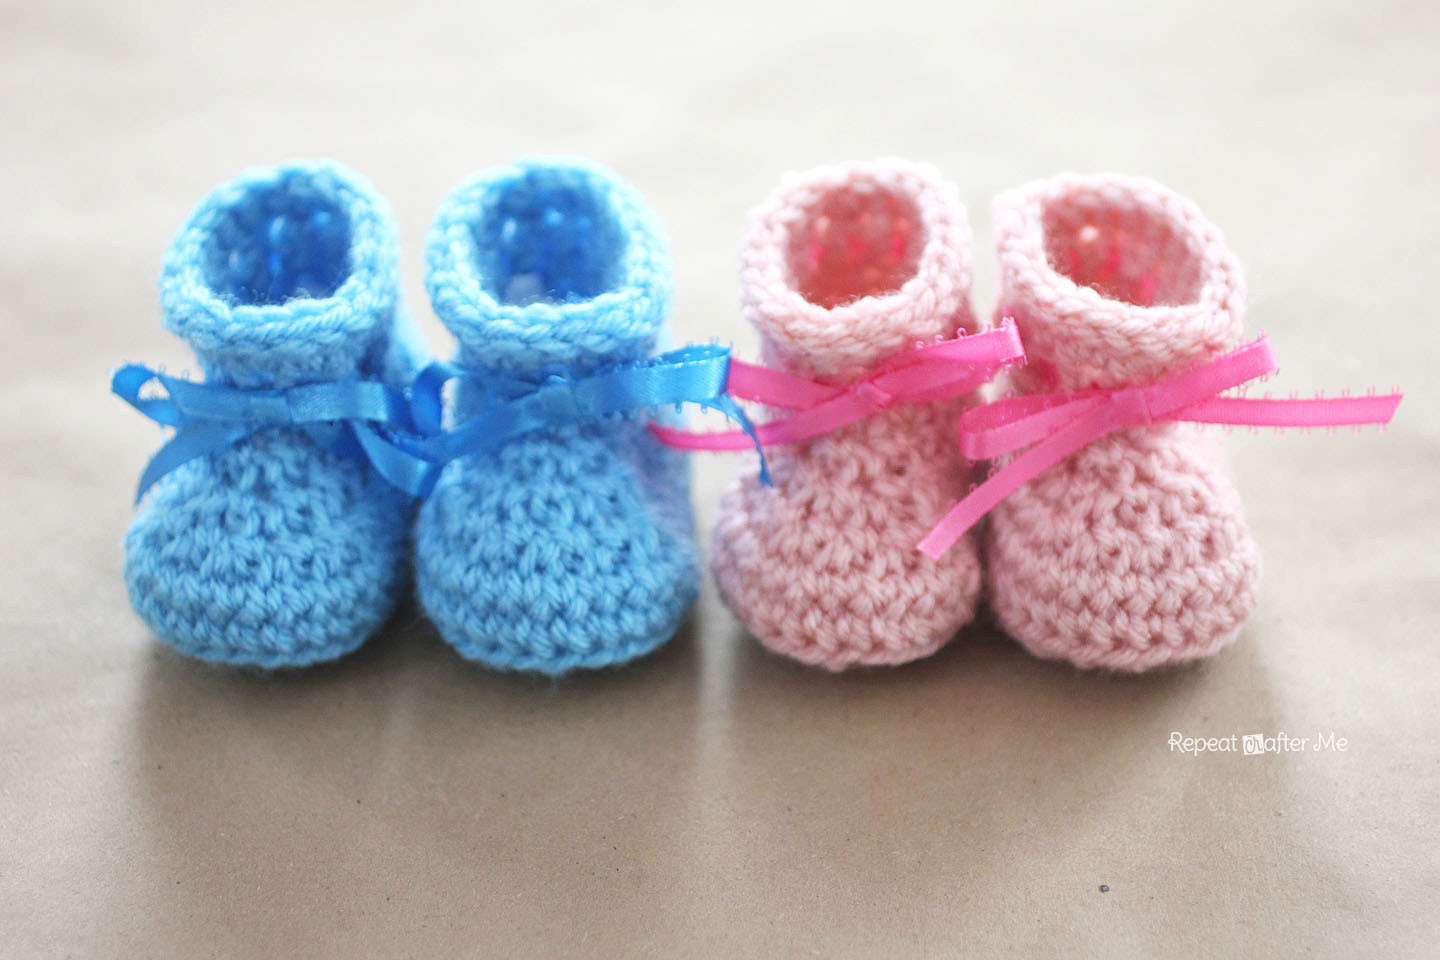 Crochet Booties Awesome Booties for Baby Of Wonderful 43 Pics Crochet Booties